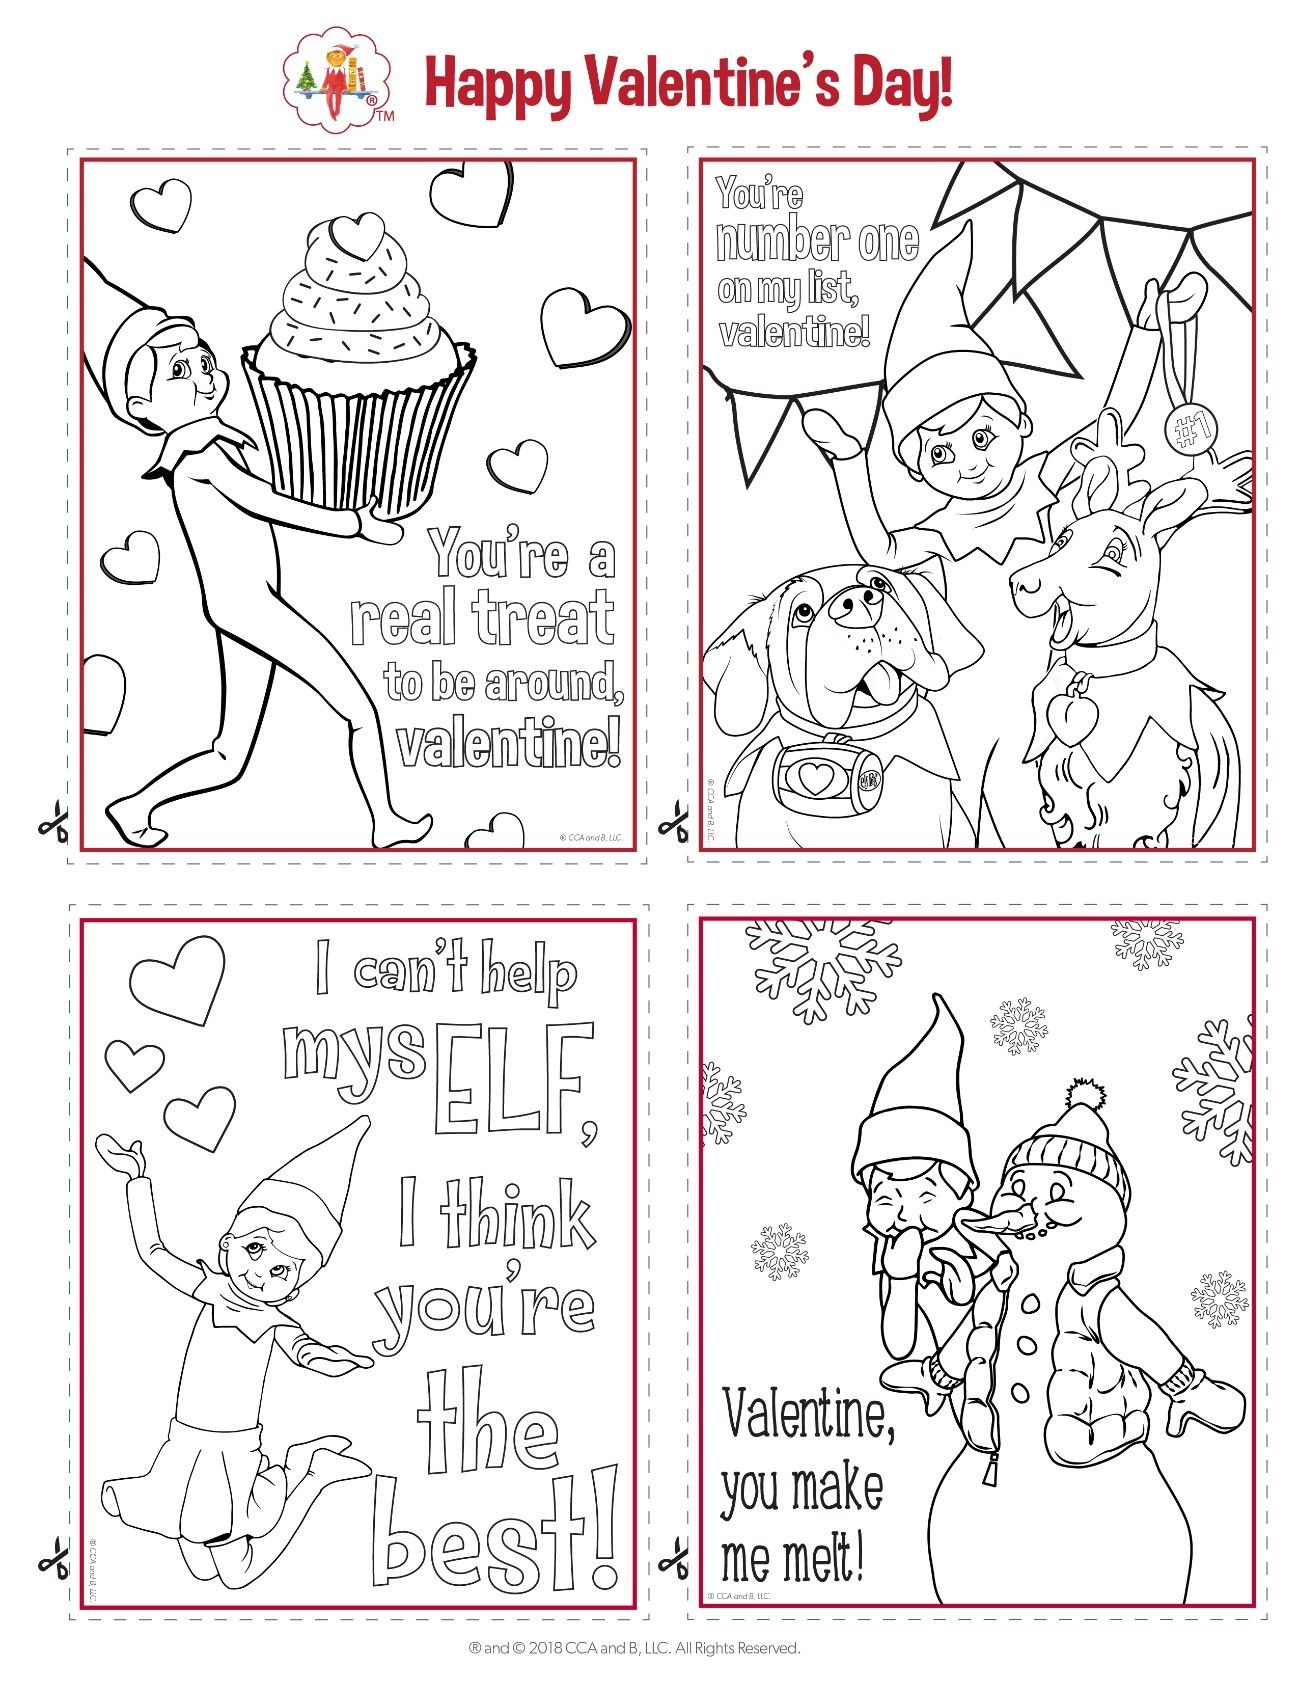 The Elf On The Shelf A Christmas Tradition Printable Valentines Day Cards Valentine Coloring Pages Valentine Coloring